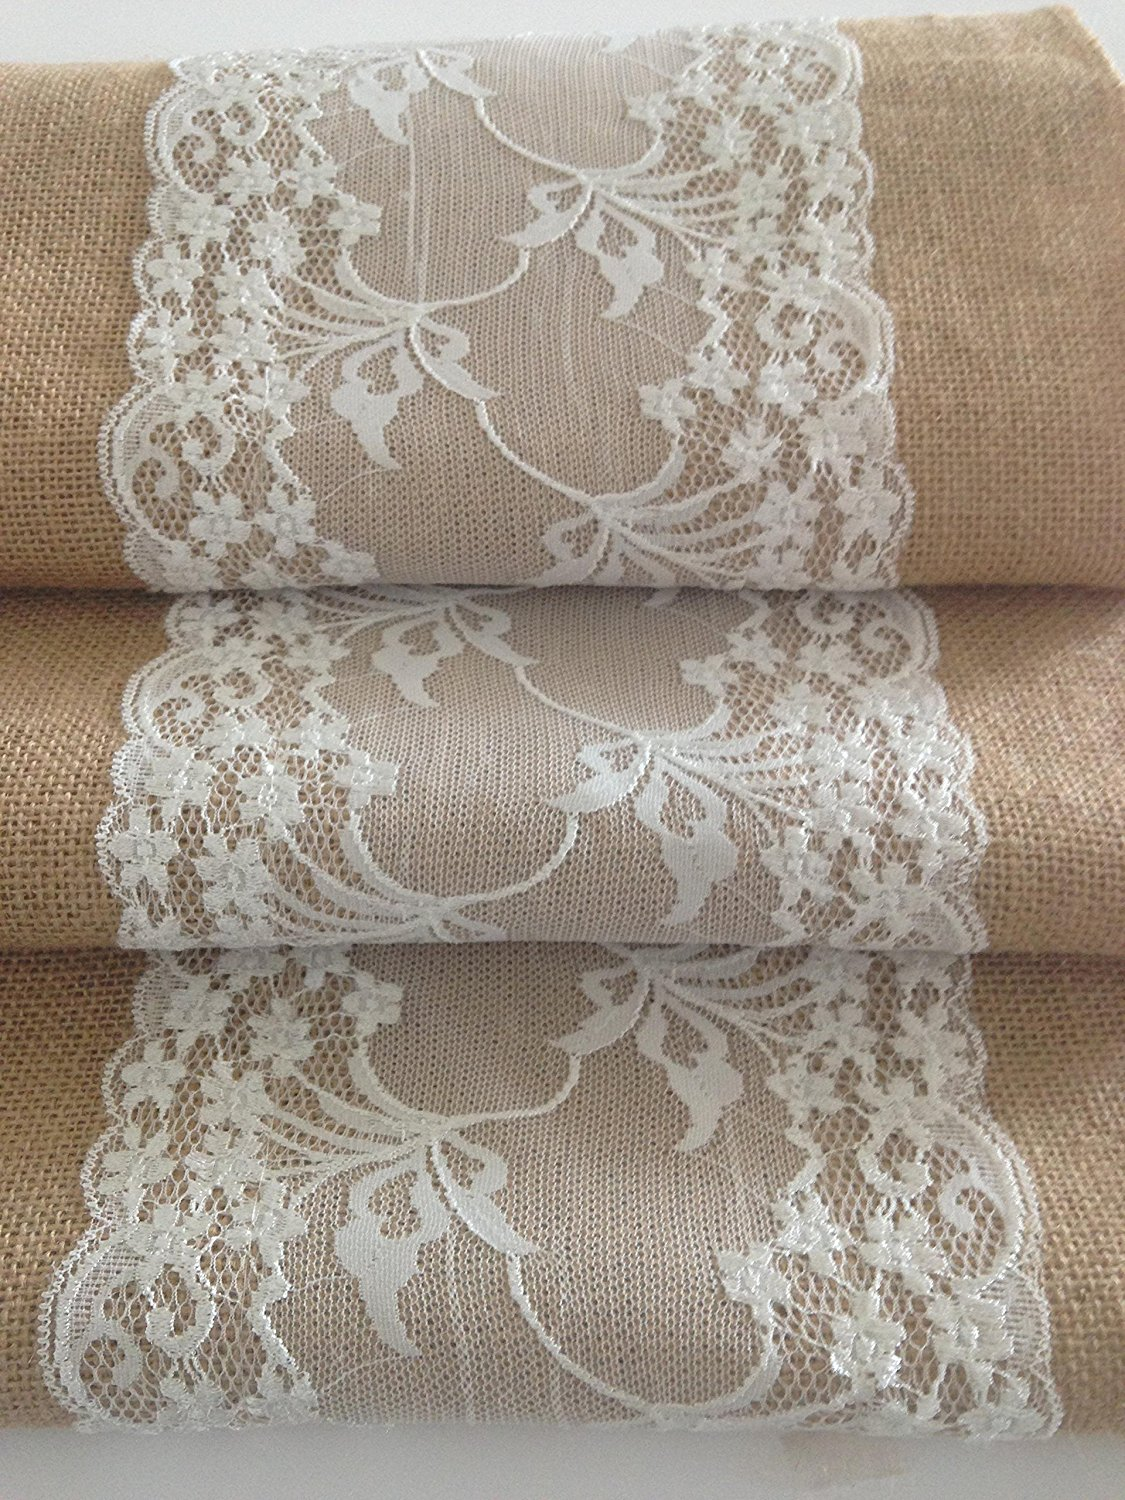 Burlap Table Runner With White Lace